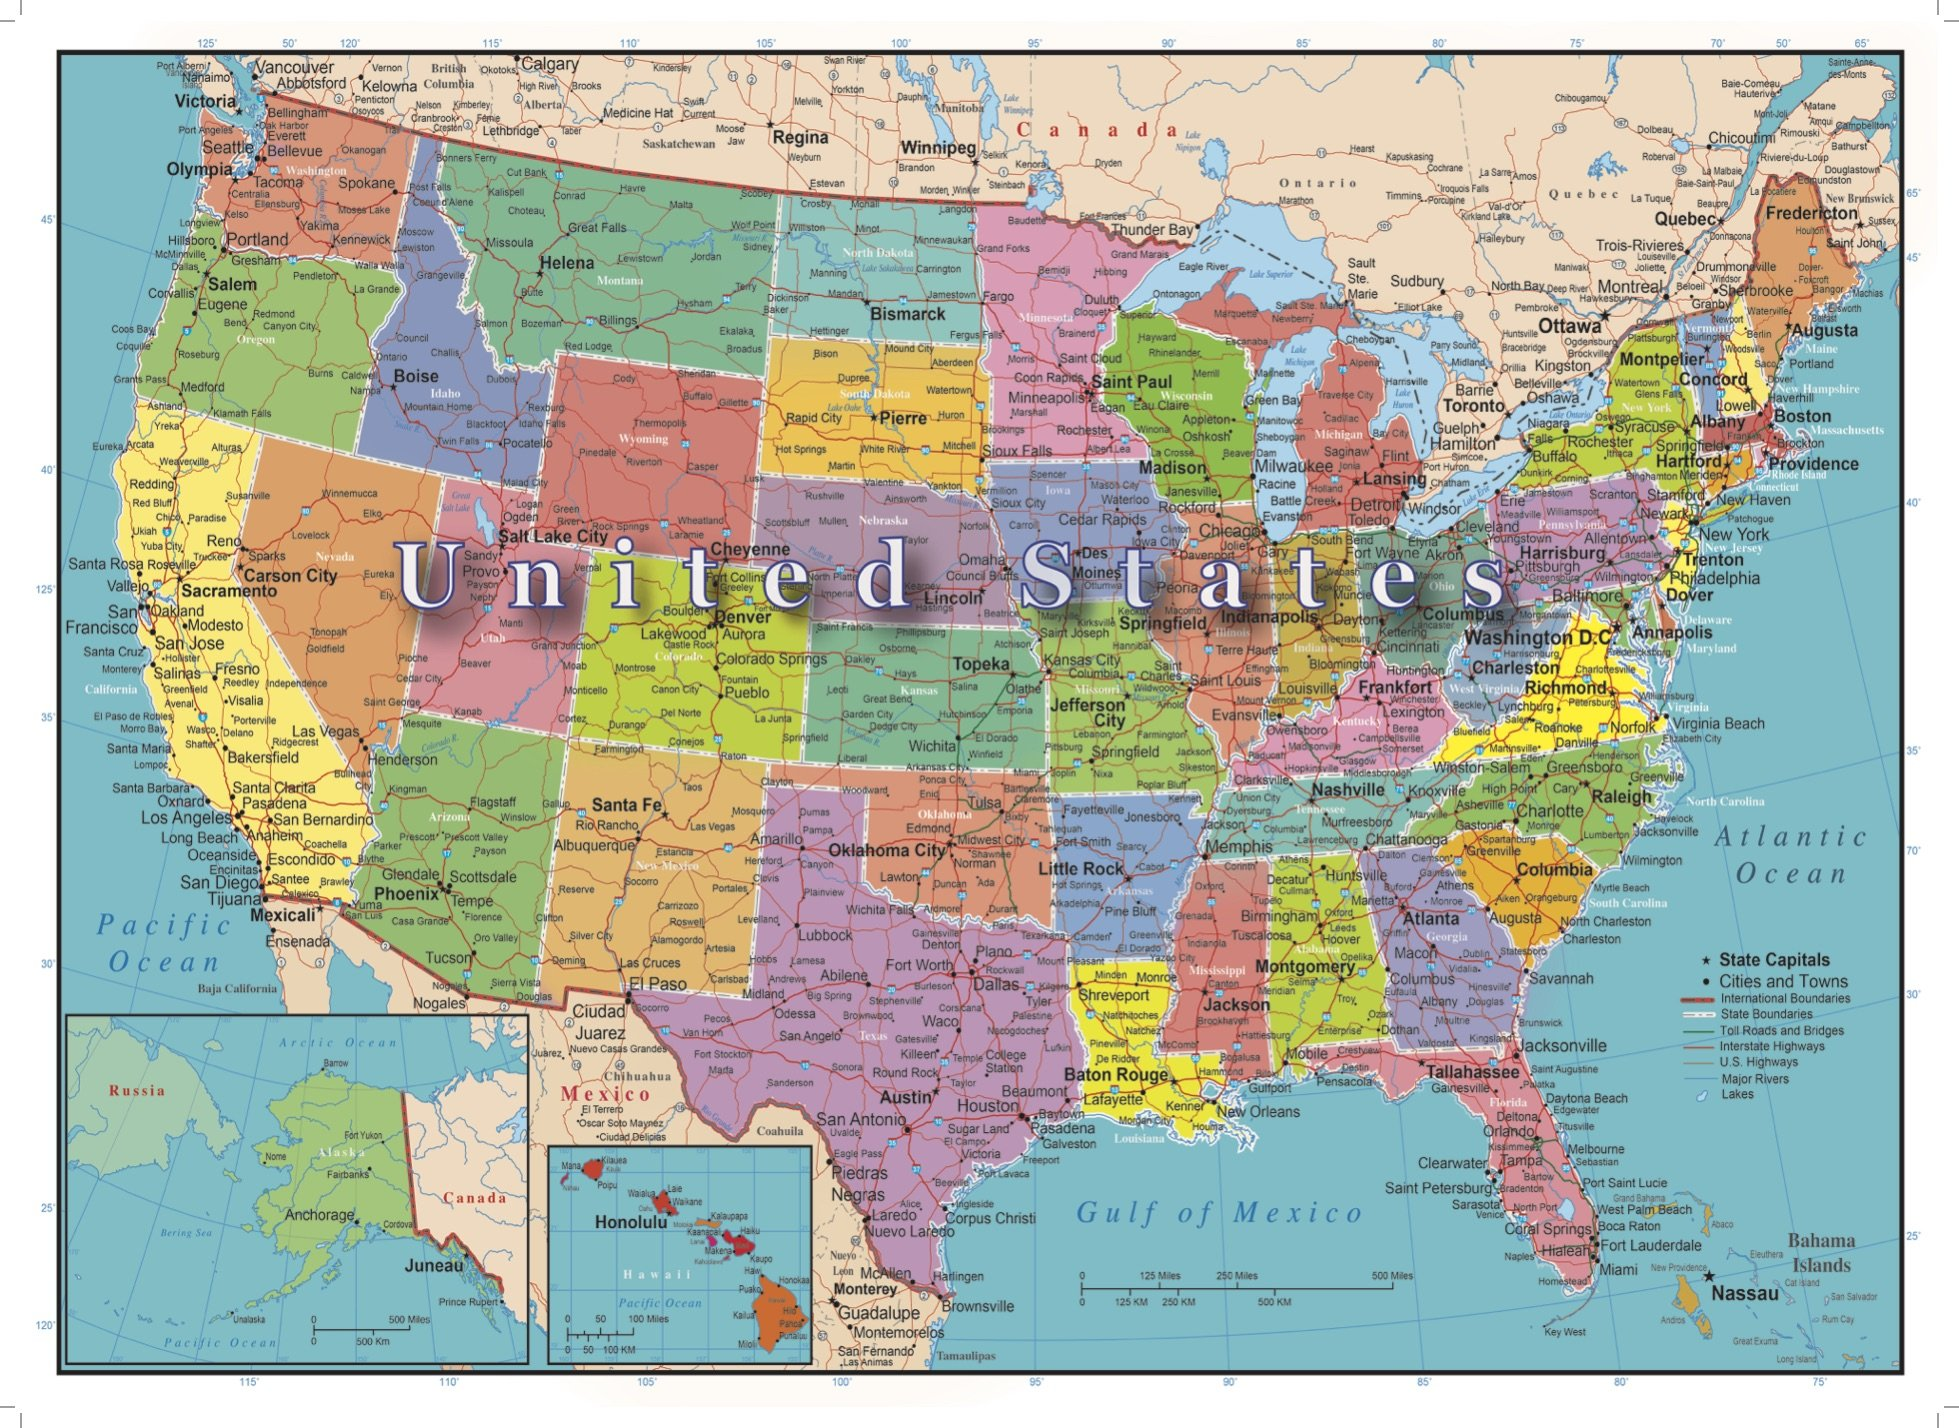 U.S.A. Map Puzzle 300 Piece | Map puzzle, Map, United states map